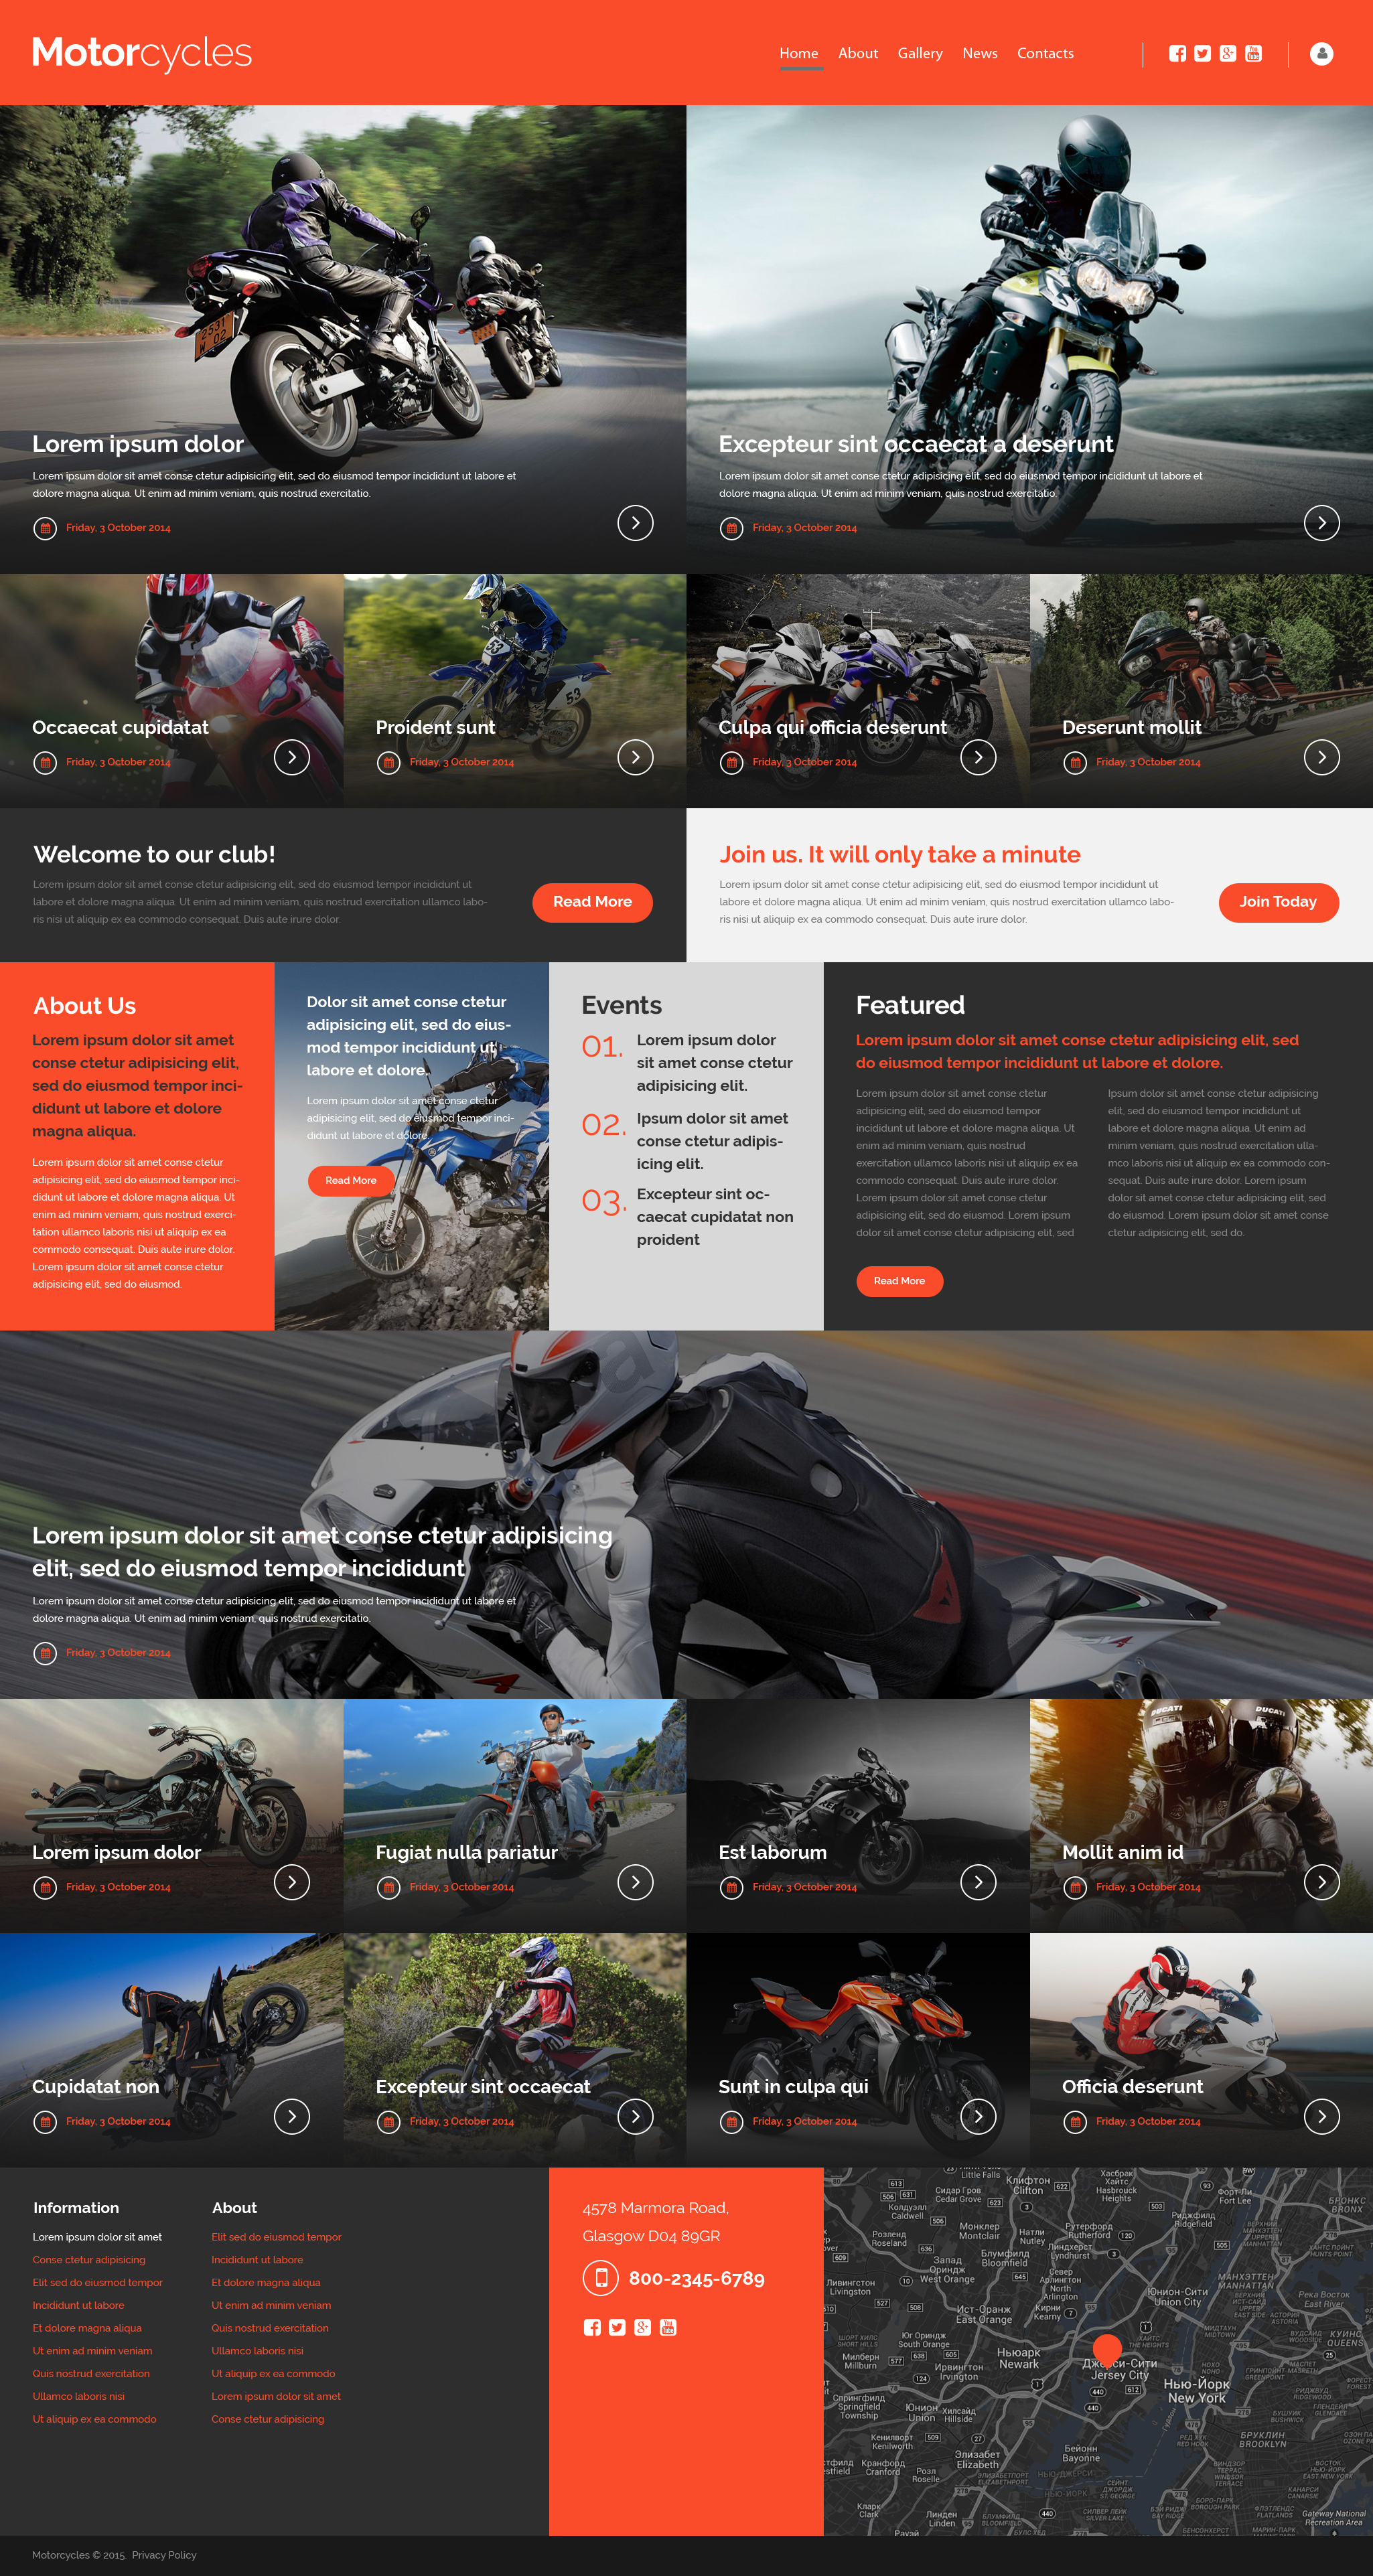 The Motor Cycles Bikes Responsive Javascript Animated Design 53156, one of the best website templates of its kind (sport, most popular), also known as Motor cycles bikes website template, moto website template, motor website template, sport website template, motor store website template, helmets website template, gear website template, scooter website template, snowmobile website template, parts website template, accessories website template, tires website template, closeouts and related with Motor cycles bikes, moto, motor, sport, motor store, helmets, gear, scooter, snowmobile, parts, accessories, tires, closeouts, etc.